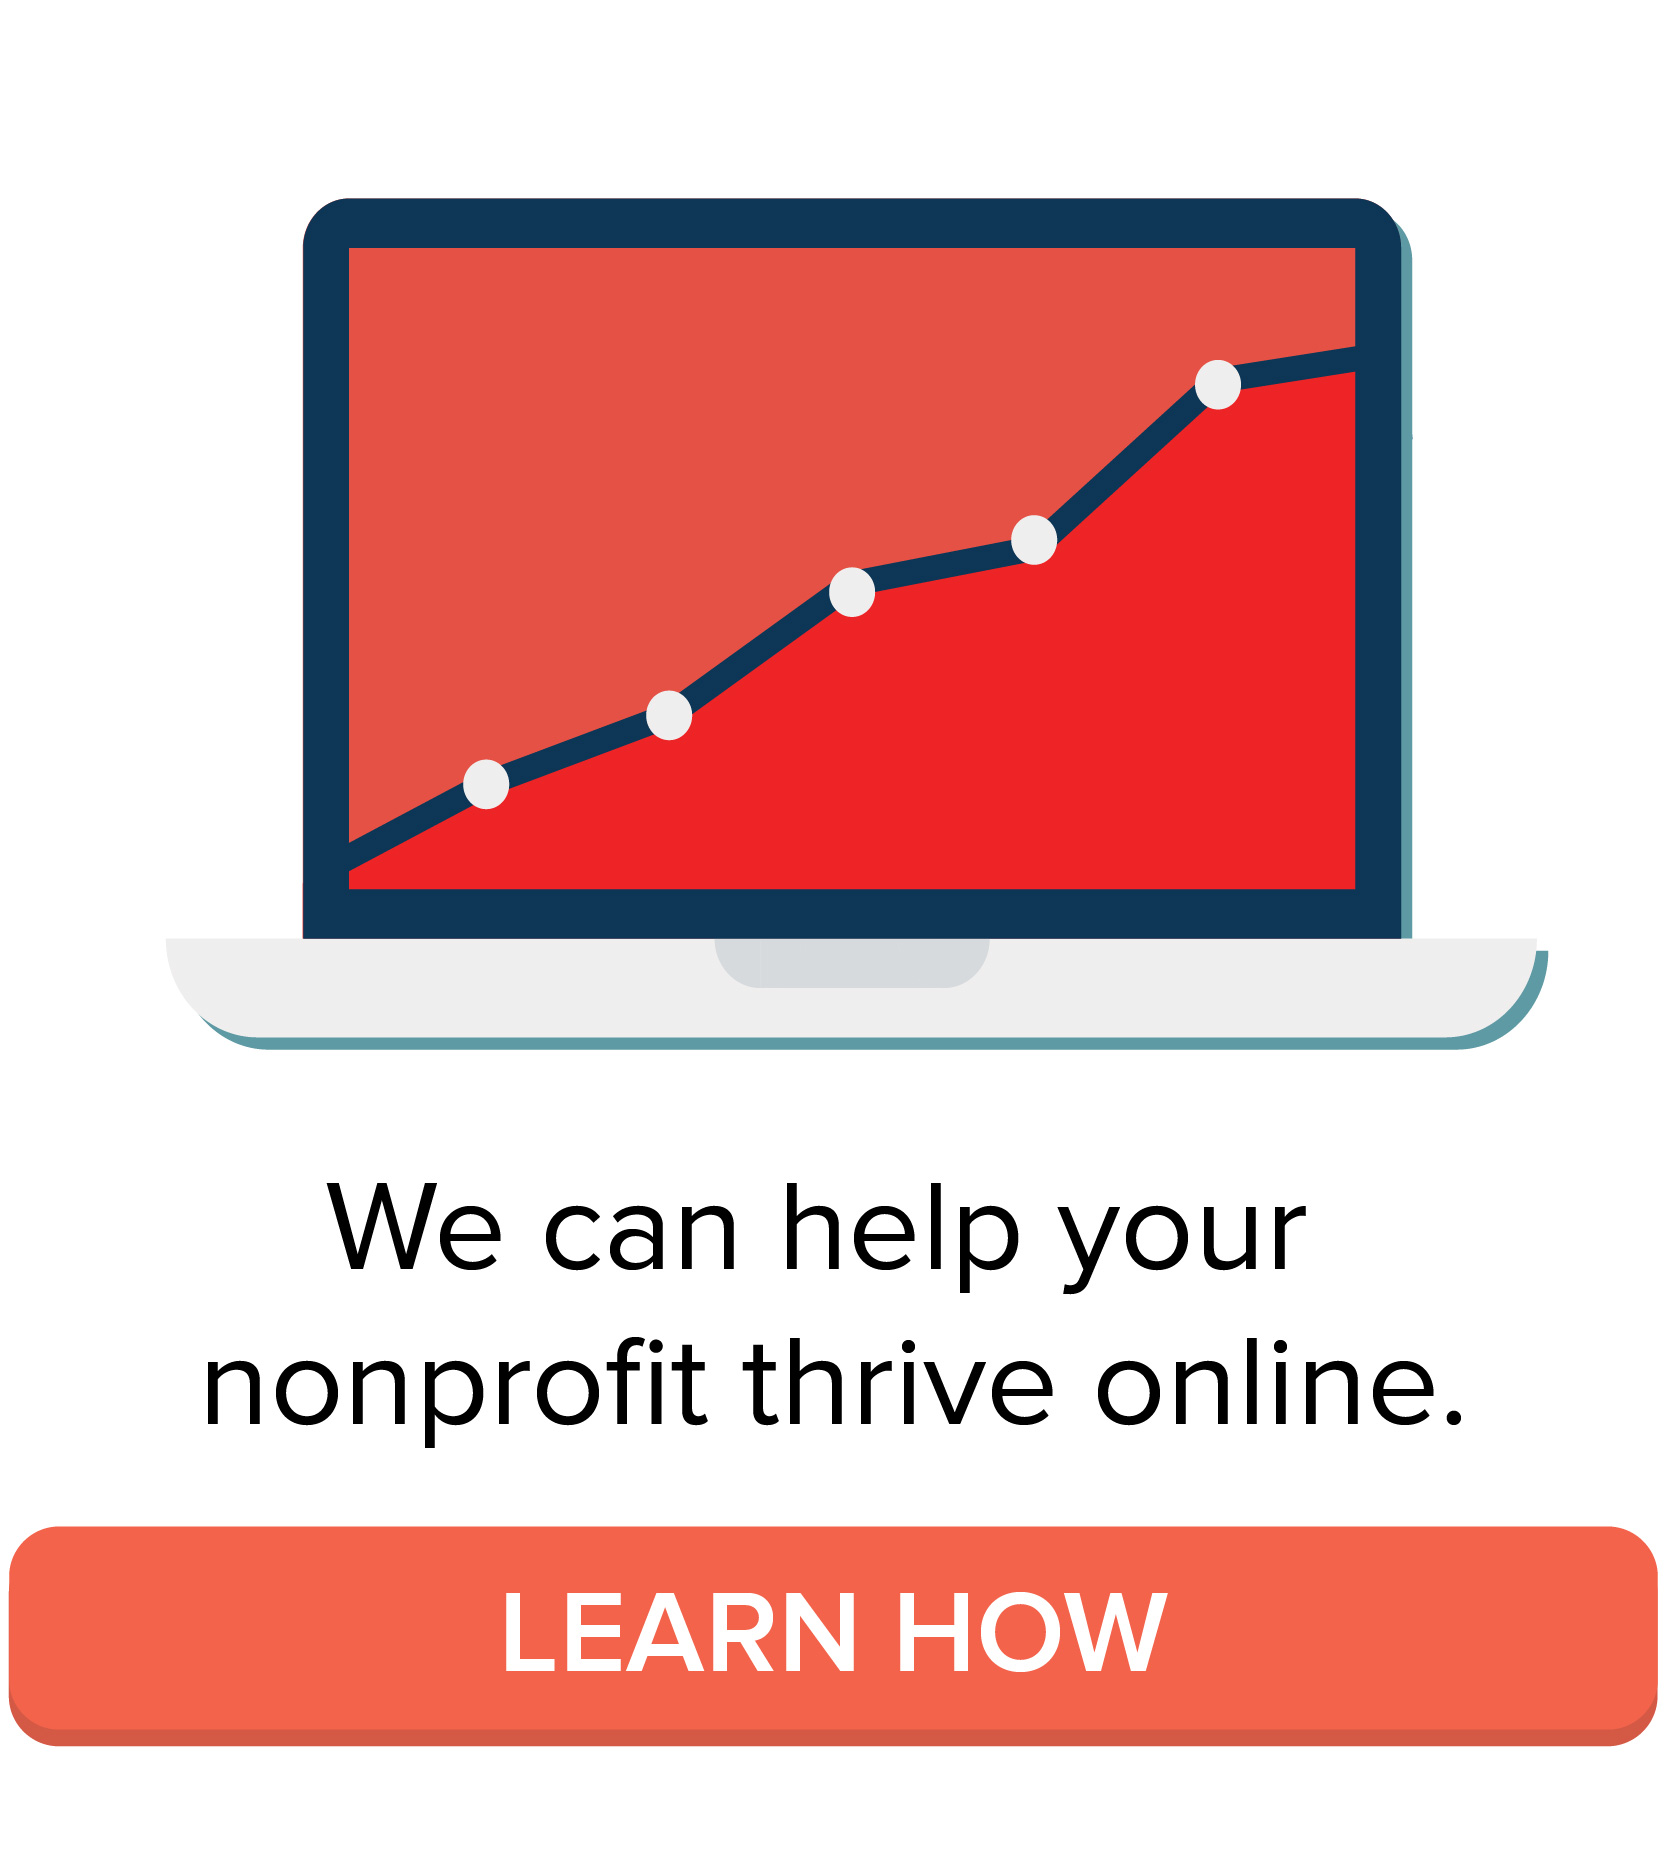 We can help your nonprofit thrive online. Learn How